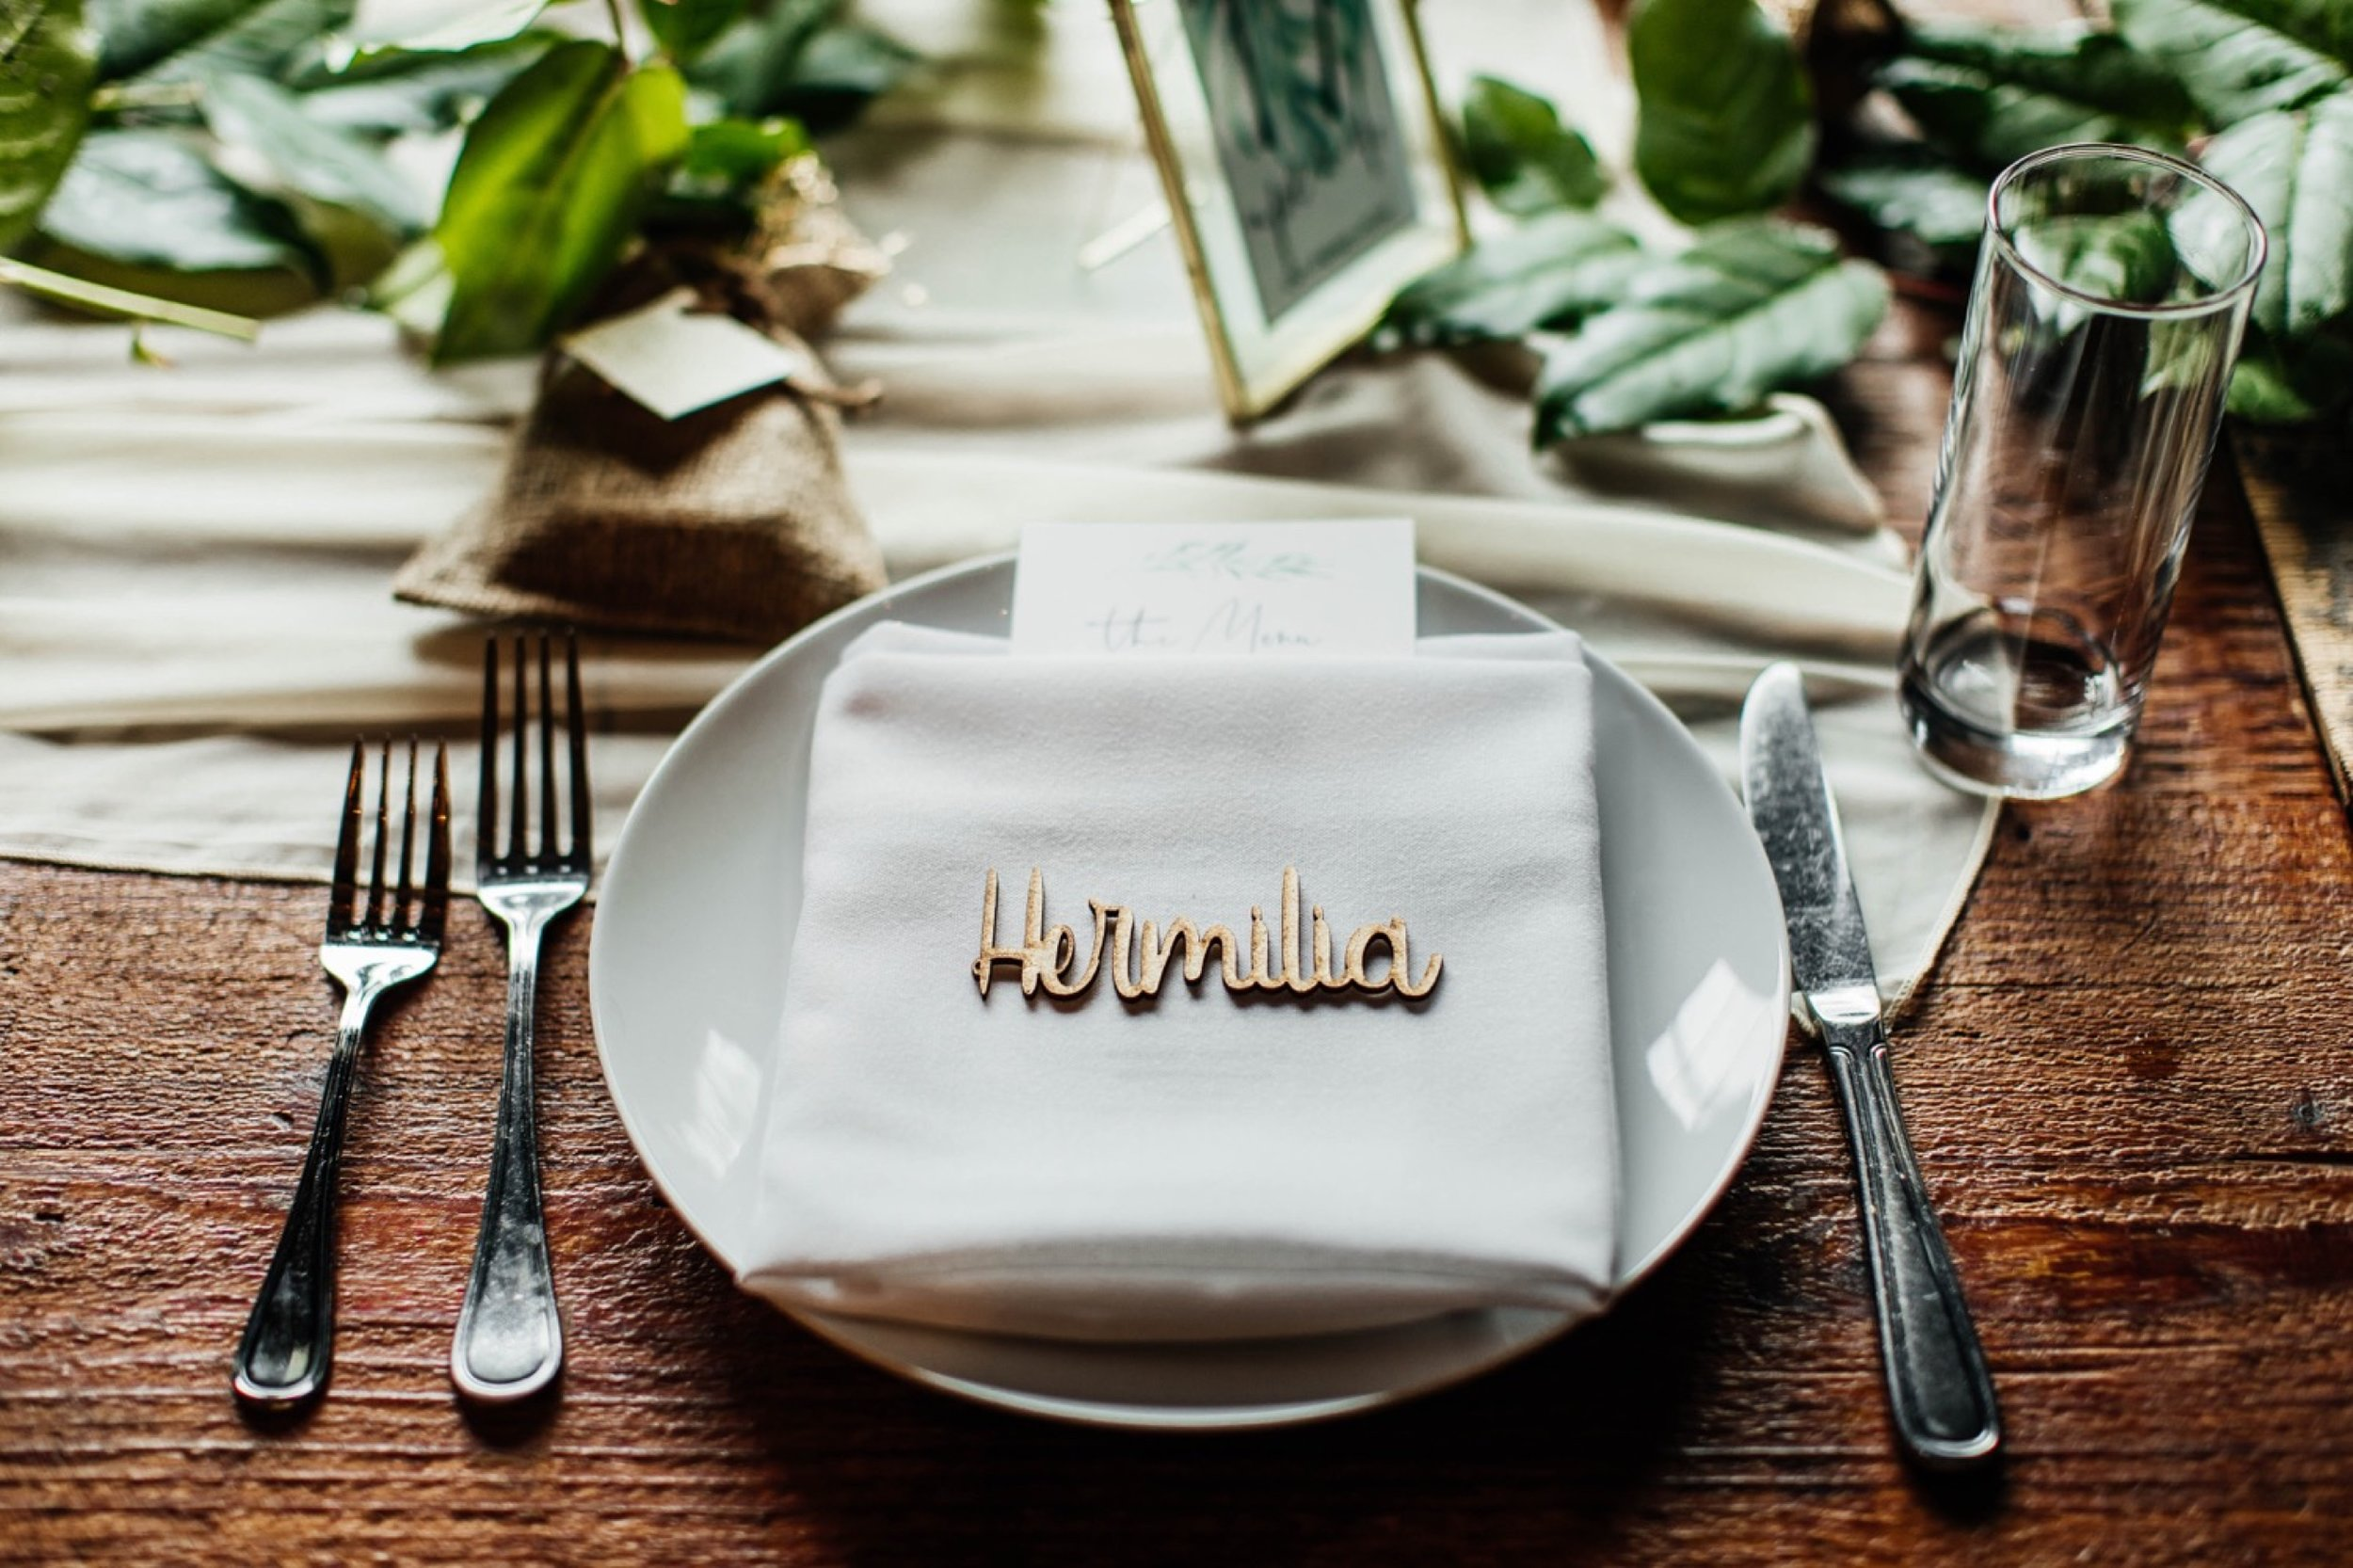 Smoky Hollow Studios Wedding, Place Setting, Wood Etched Place Card, Wedding Decor, Los Angeles Wedding, Los Angeles Wedding Photographer, Los Angeles Wedding Photos, Los Angeles Wedding Photography, DTLA Wedding, California Wedding Photographer, California Wedding Photography, California Wedding Photos, SoCal Wedding Photographer, SoCal Wedding Photos, SoCal Wedding Photography, Los Angeles Wedding Inspo, Destination Wedding California, Elegant Wedding, Modern Wedding, Warehouse Wedding